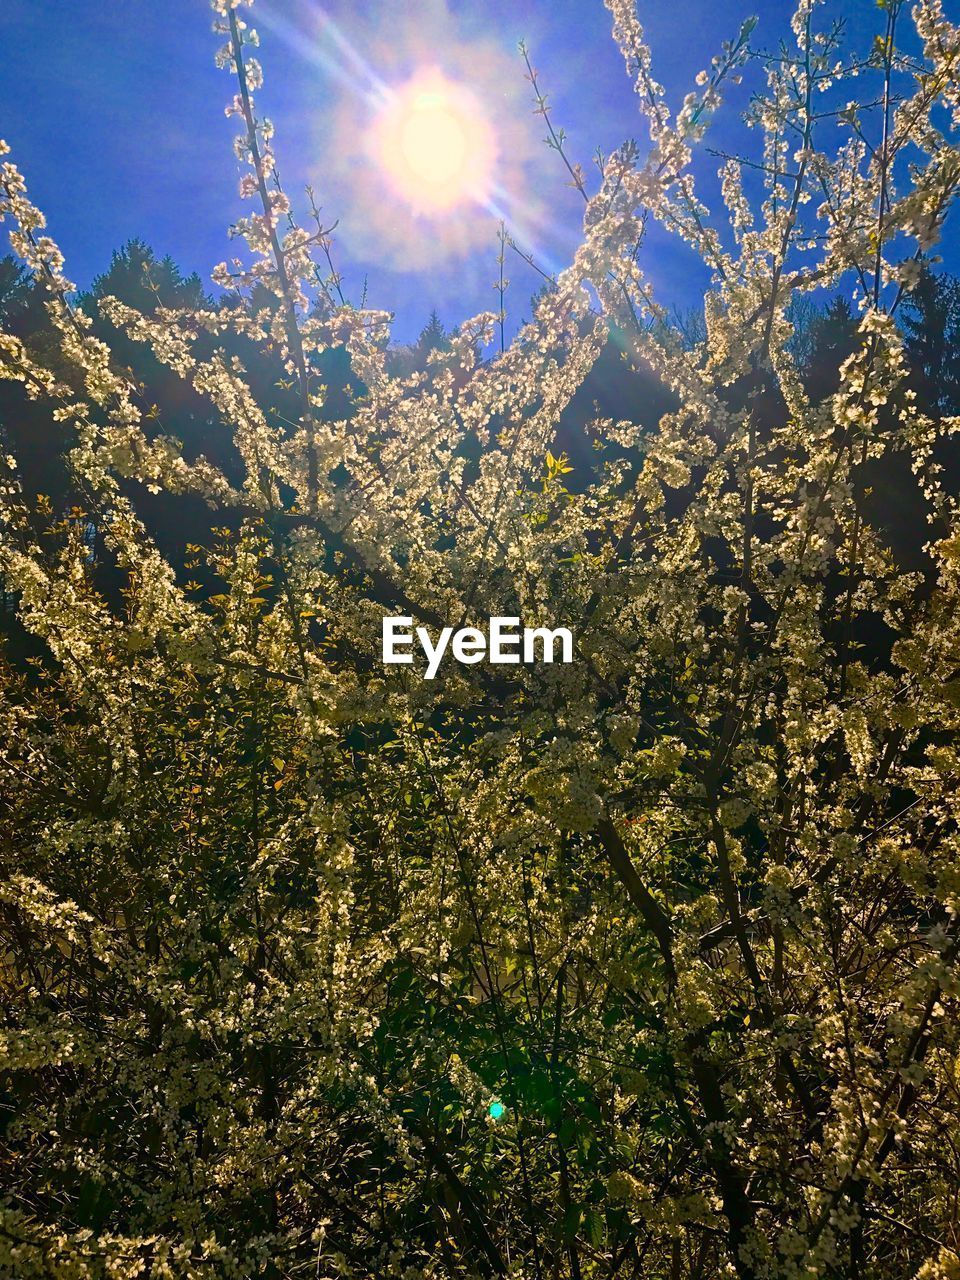 nature, beauty in nature, growth, sun, tree, sunlight, sunbeam, flower, low angle view, bright, branch, no people, fragility, blossom, day, freshness, tranquility, outdoors, scenics, springtime, sky, sunshine, close-up